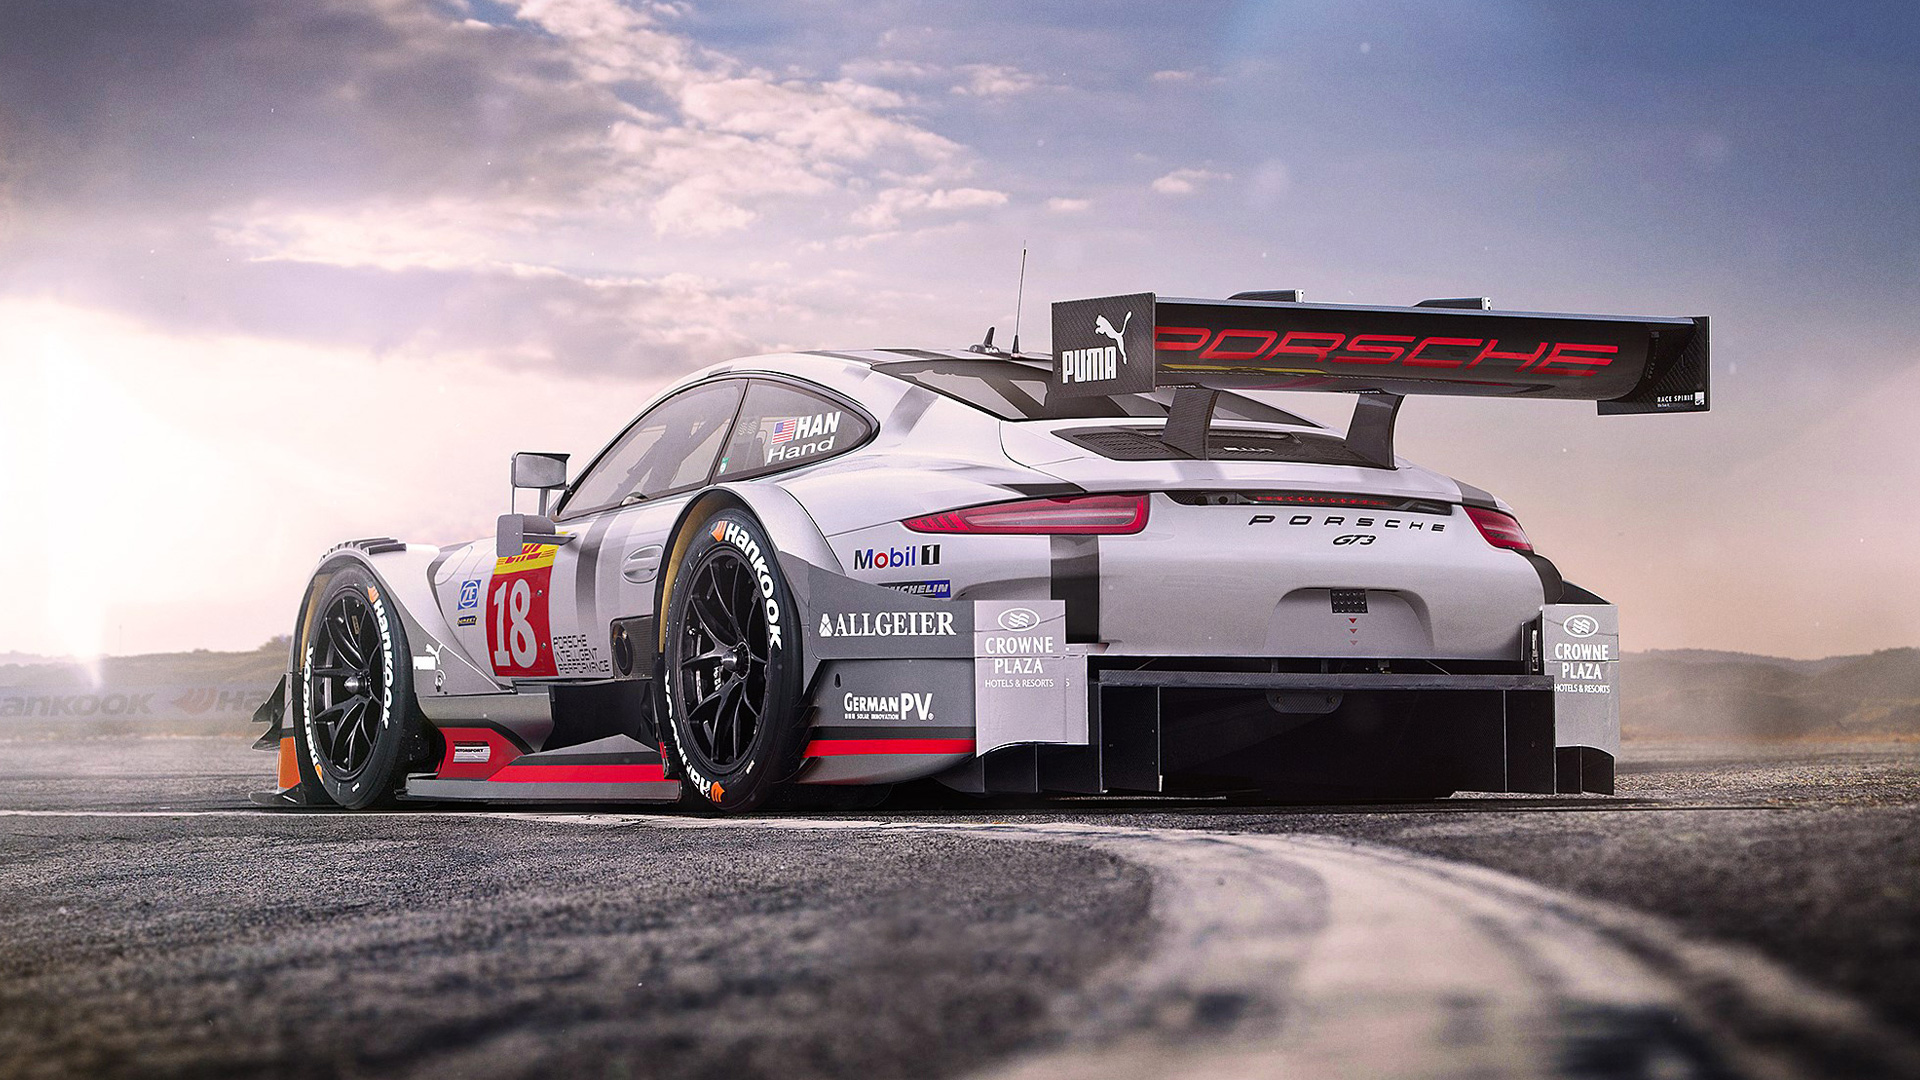 Porsche 911 GT3 Race Car Wallpaper | HD Car Wallpapers ... Race 2 Wallpapers Hd